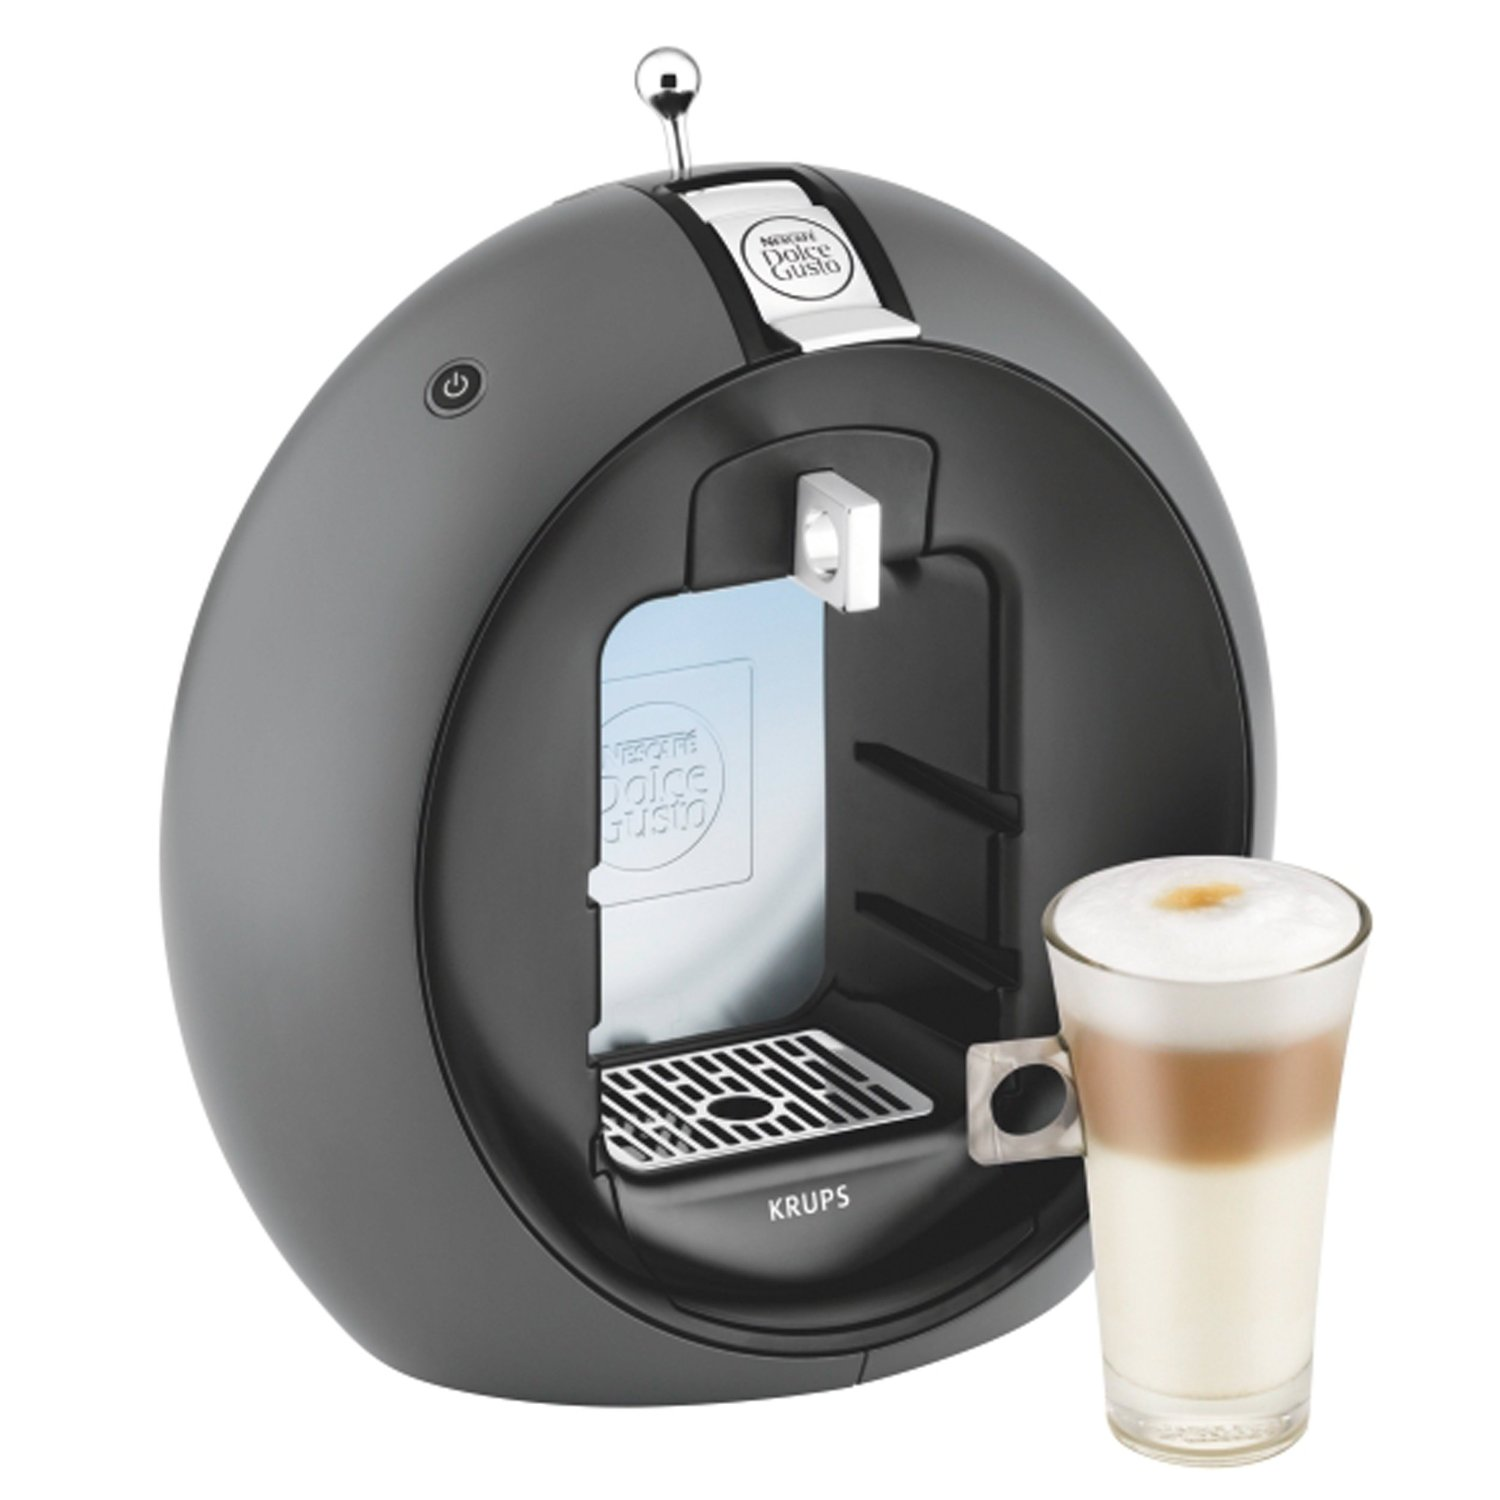 krups nescaf dolce gusto circolo charcoal grey kp5000 kaffeekapselmaschine ebay. Black Bedroom Furniture Sets. Home Design Ideas